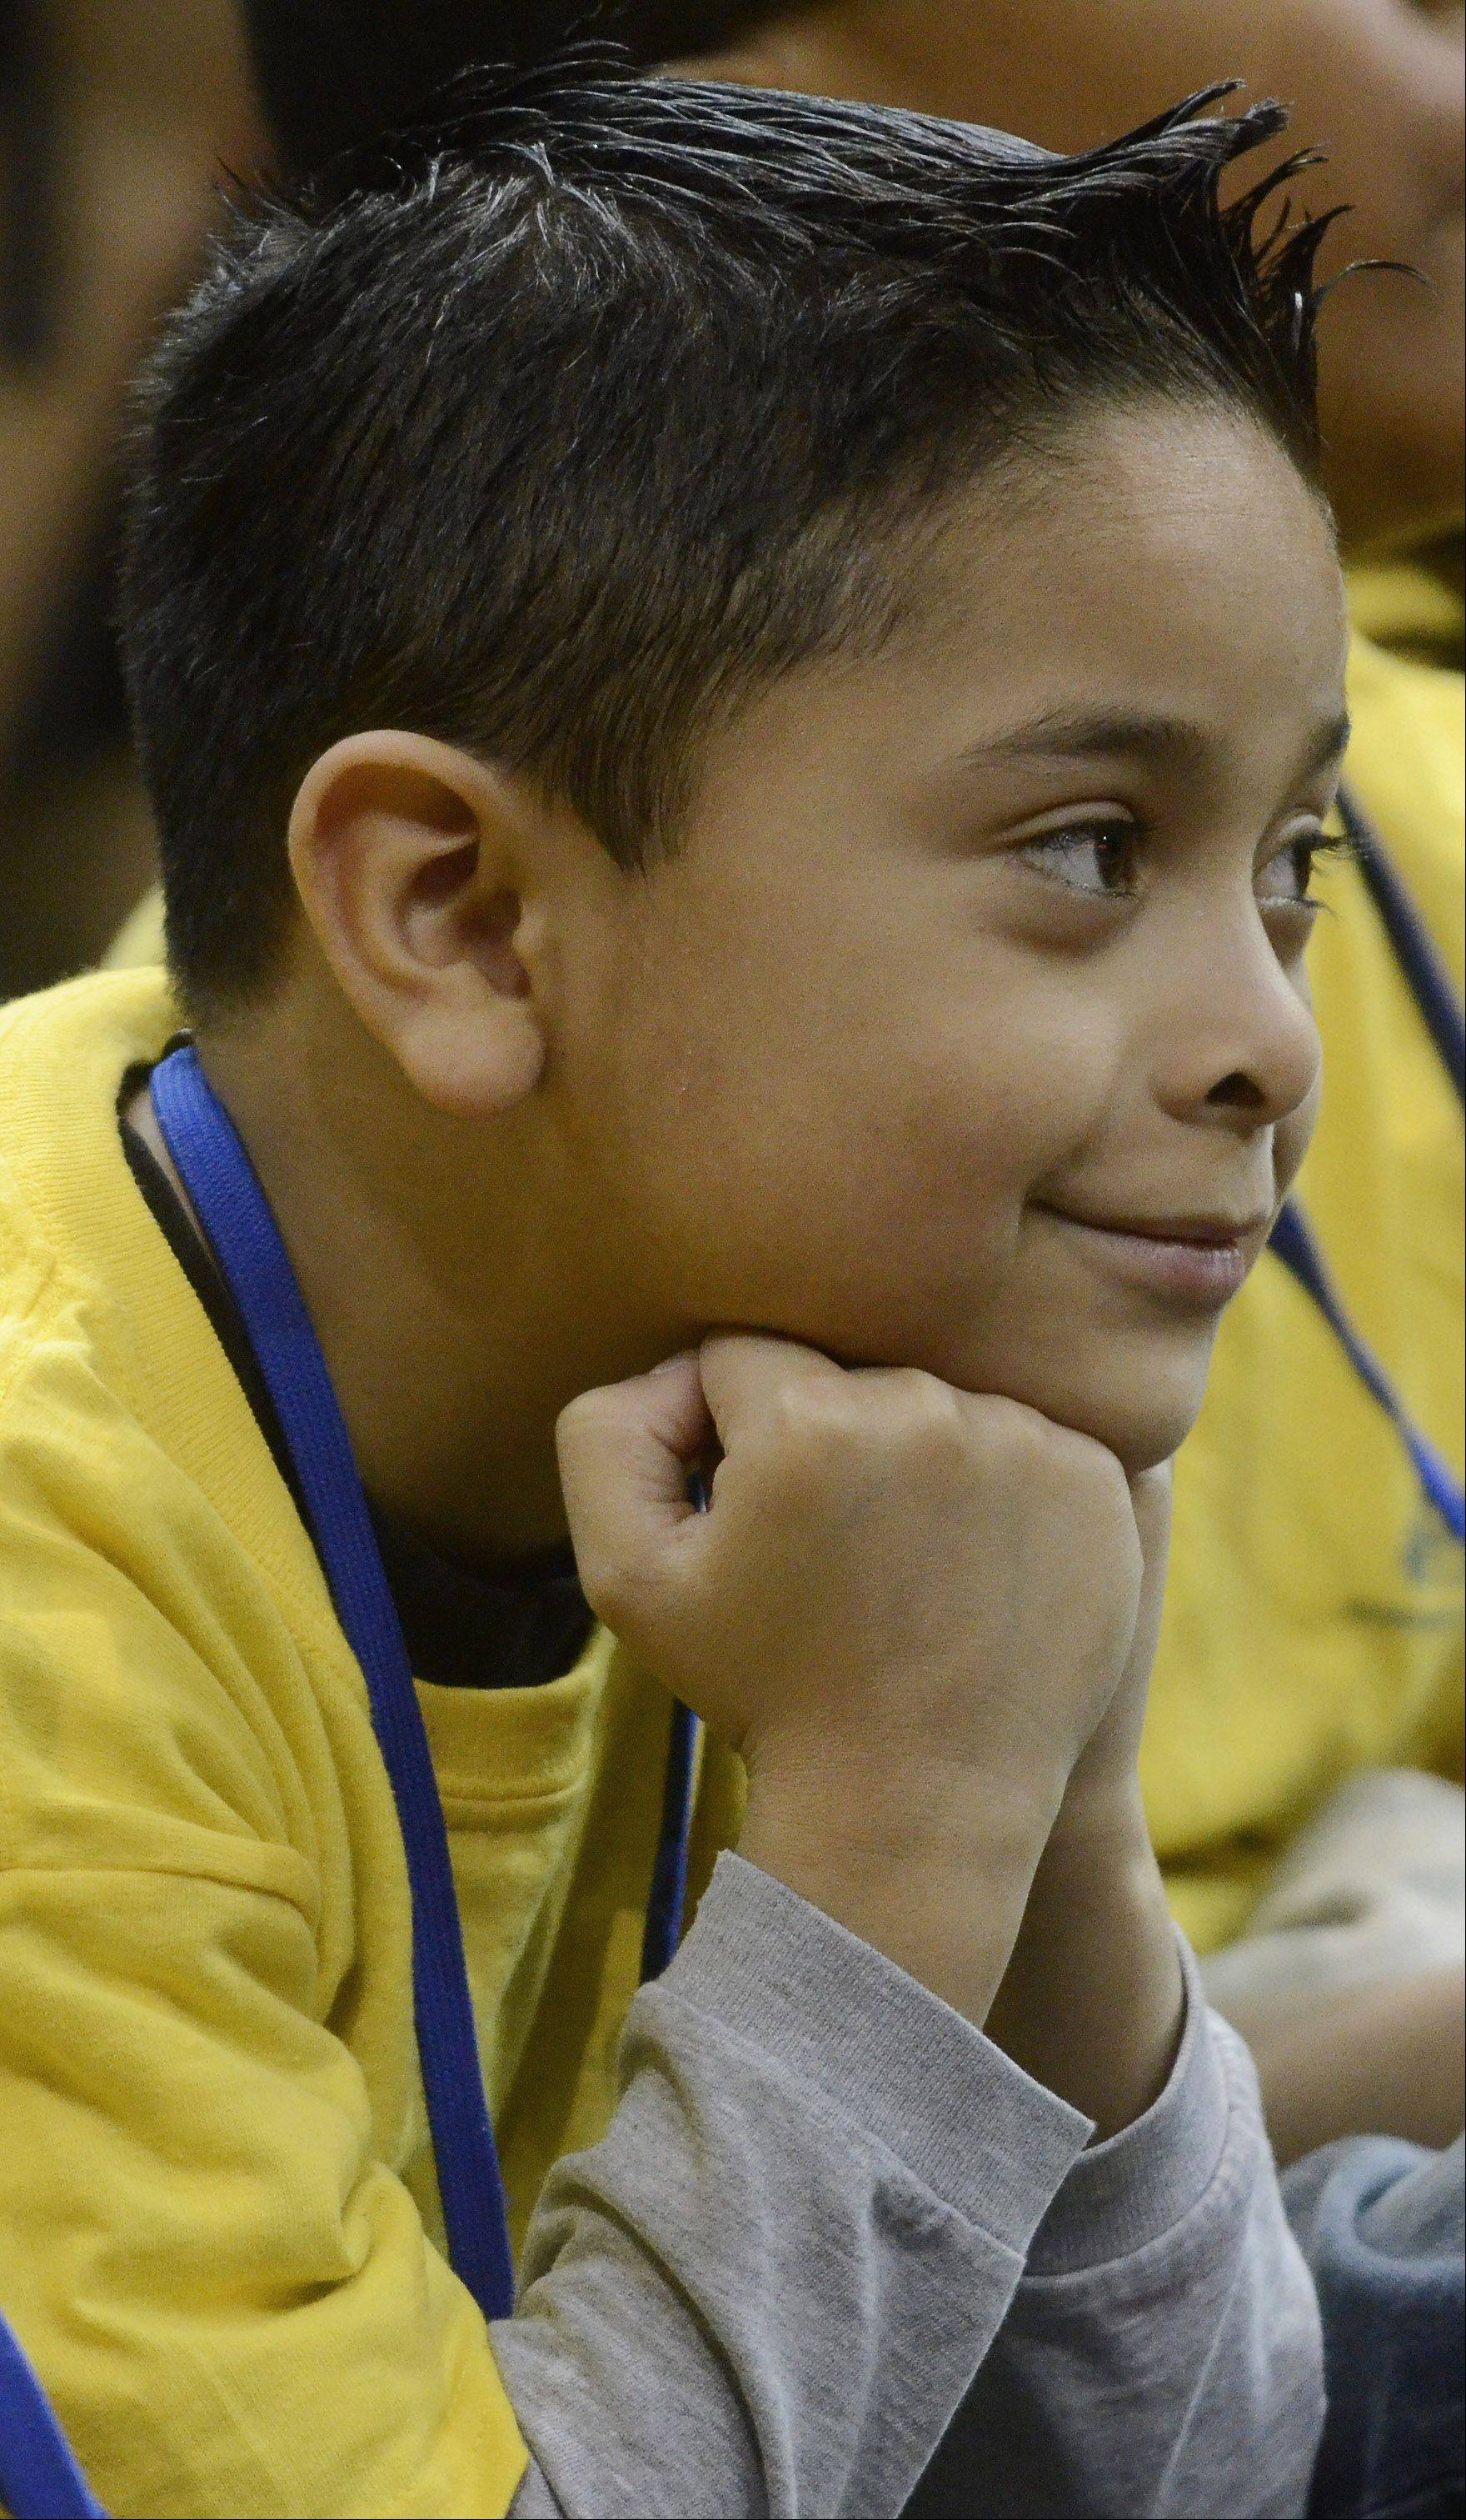 Daniel Cortez, a Rosemont Elementary School second-grader, enjoys the show.